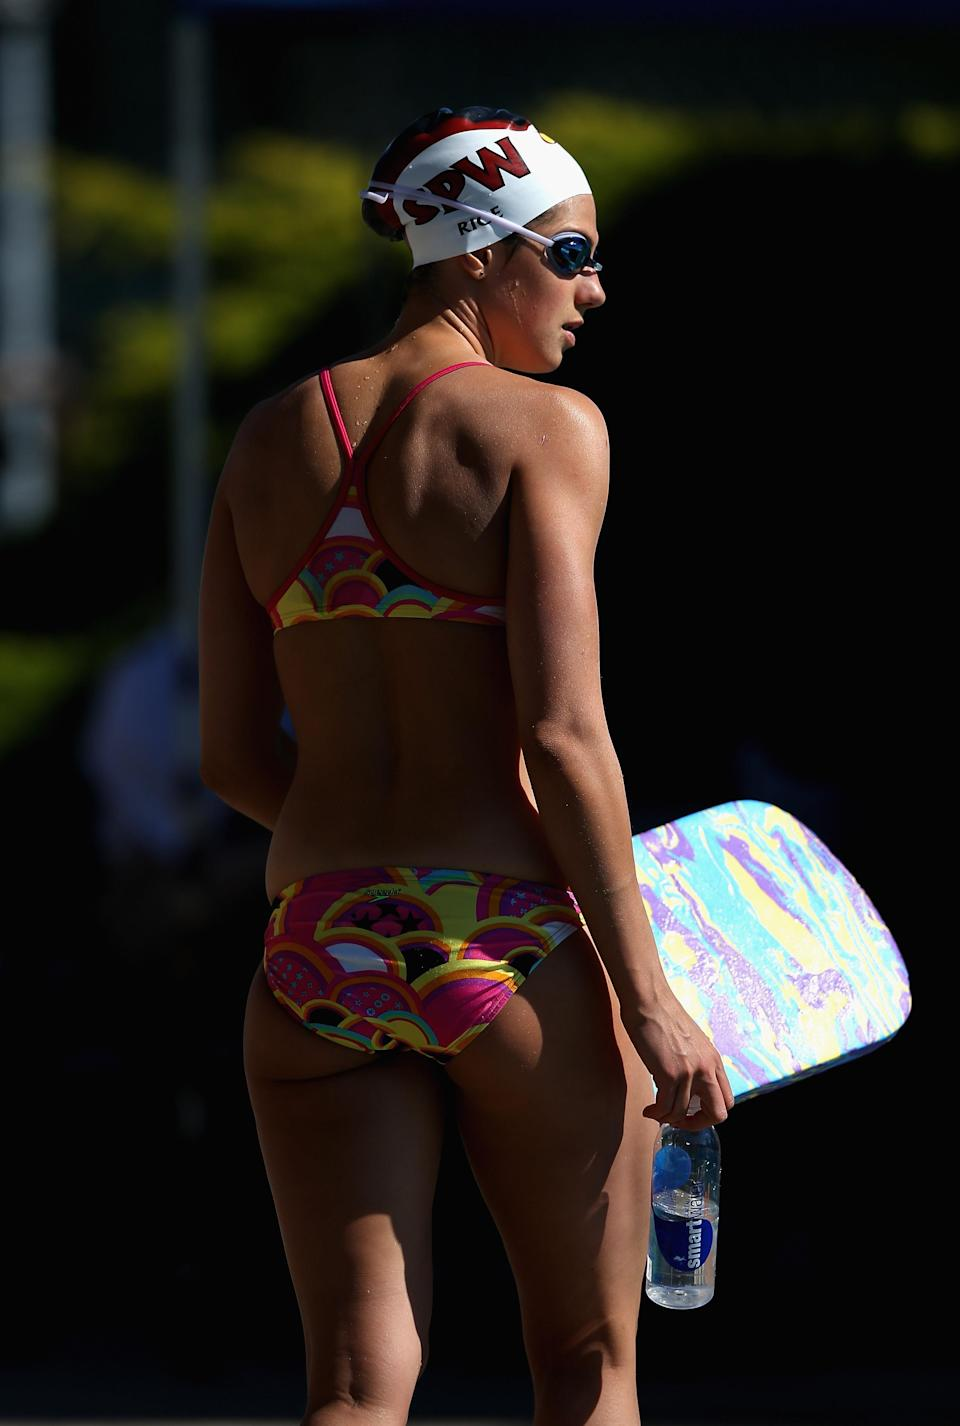 Stephanie Rice of Australia gets ready to swim in the warm up pool during day 3 of the Santa Clara International Grand Prix at George F. Haines International Swim Center on June 2, 2012 in Santa Clara, California. (Photo by Ezra Shaw/Getty Images)